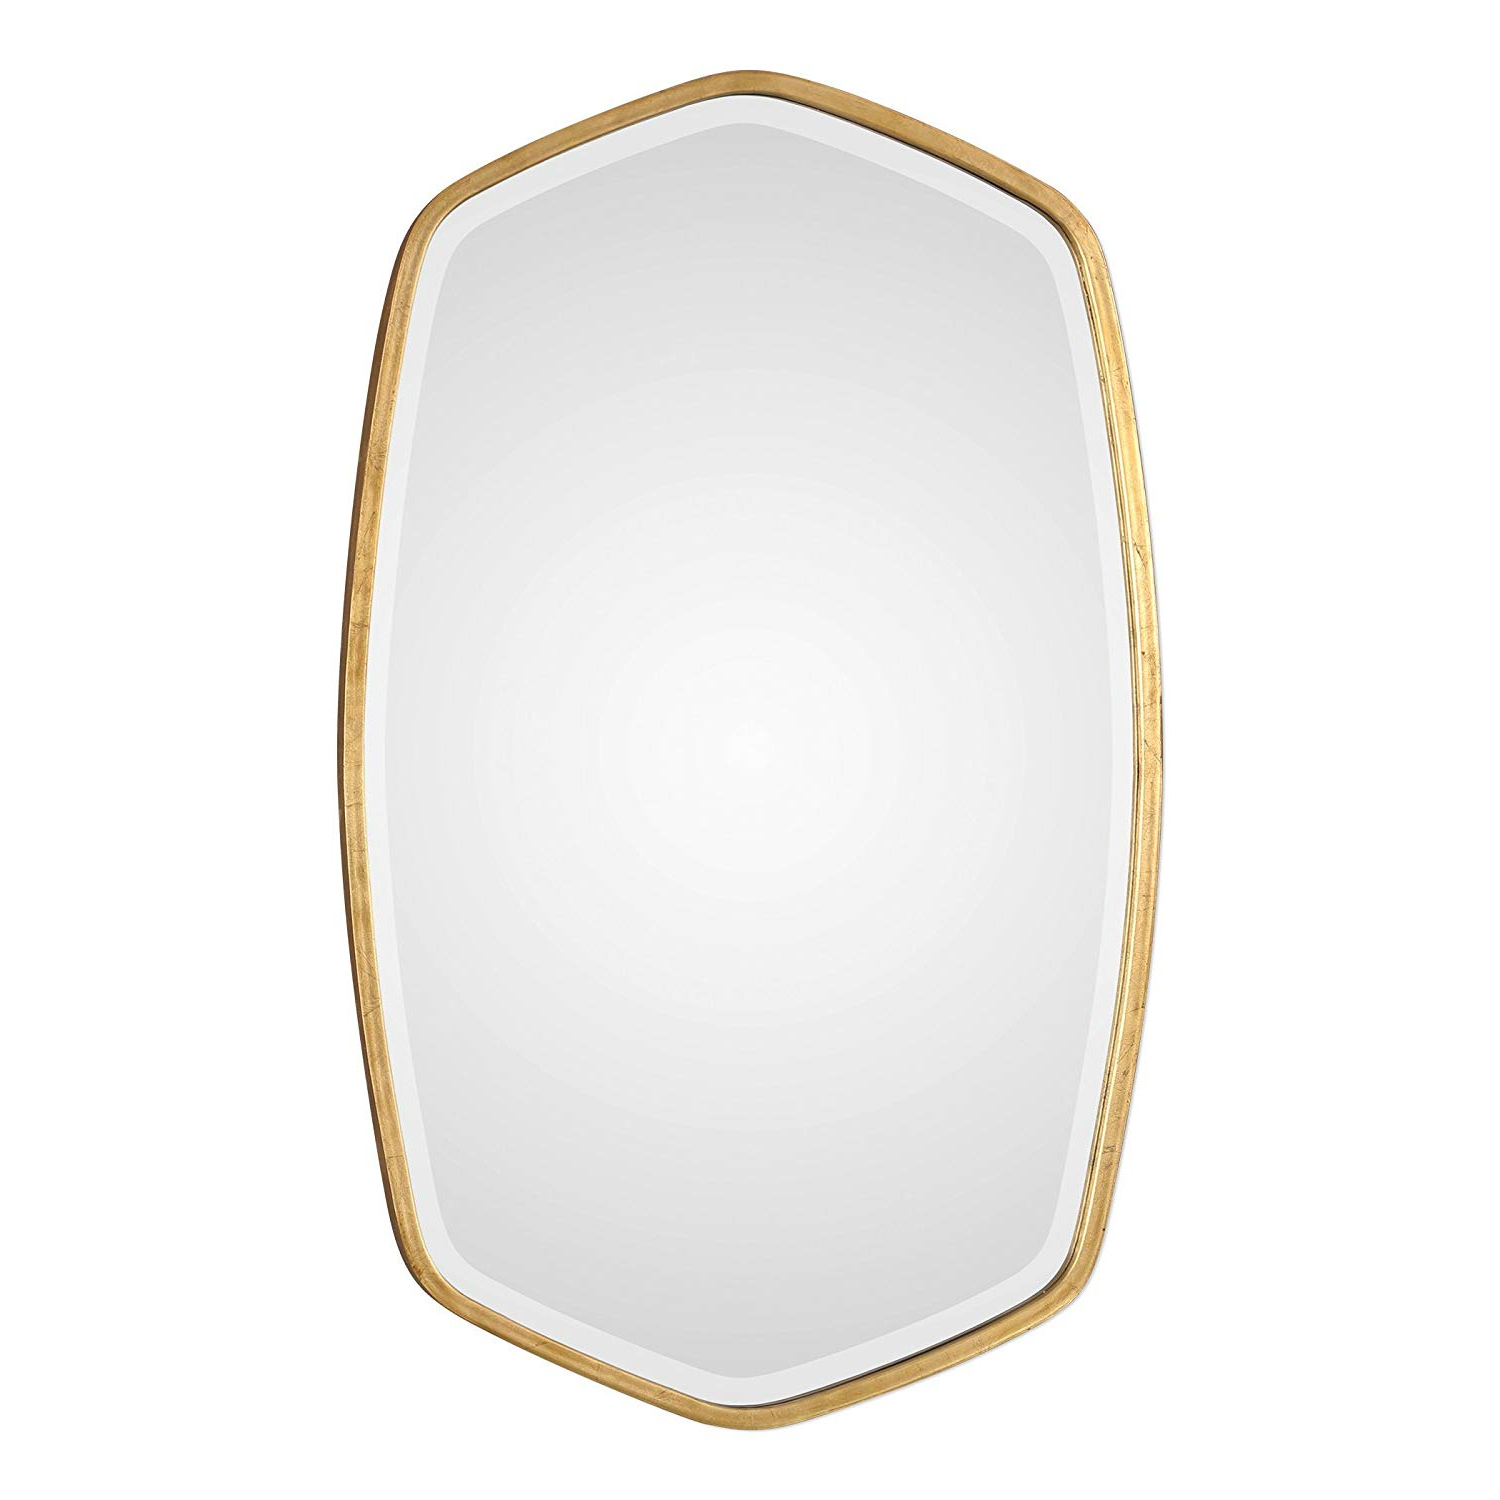 Best And Newest Amazon: My Swanky Home Elegant Curved Gold Oval Hexagon With Thin Wall Mirrors (View 3 of 20)